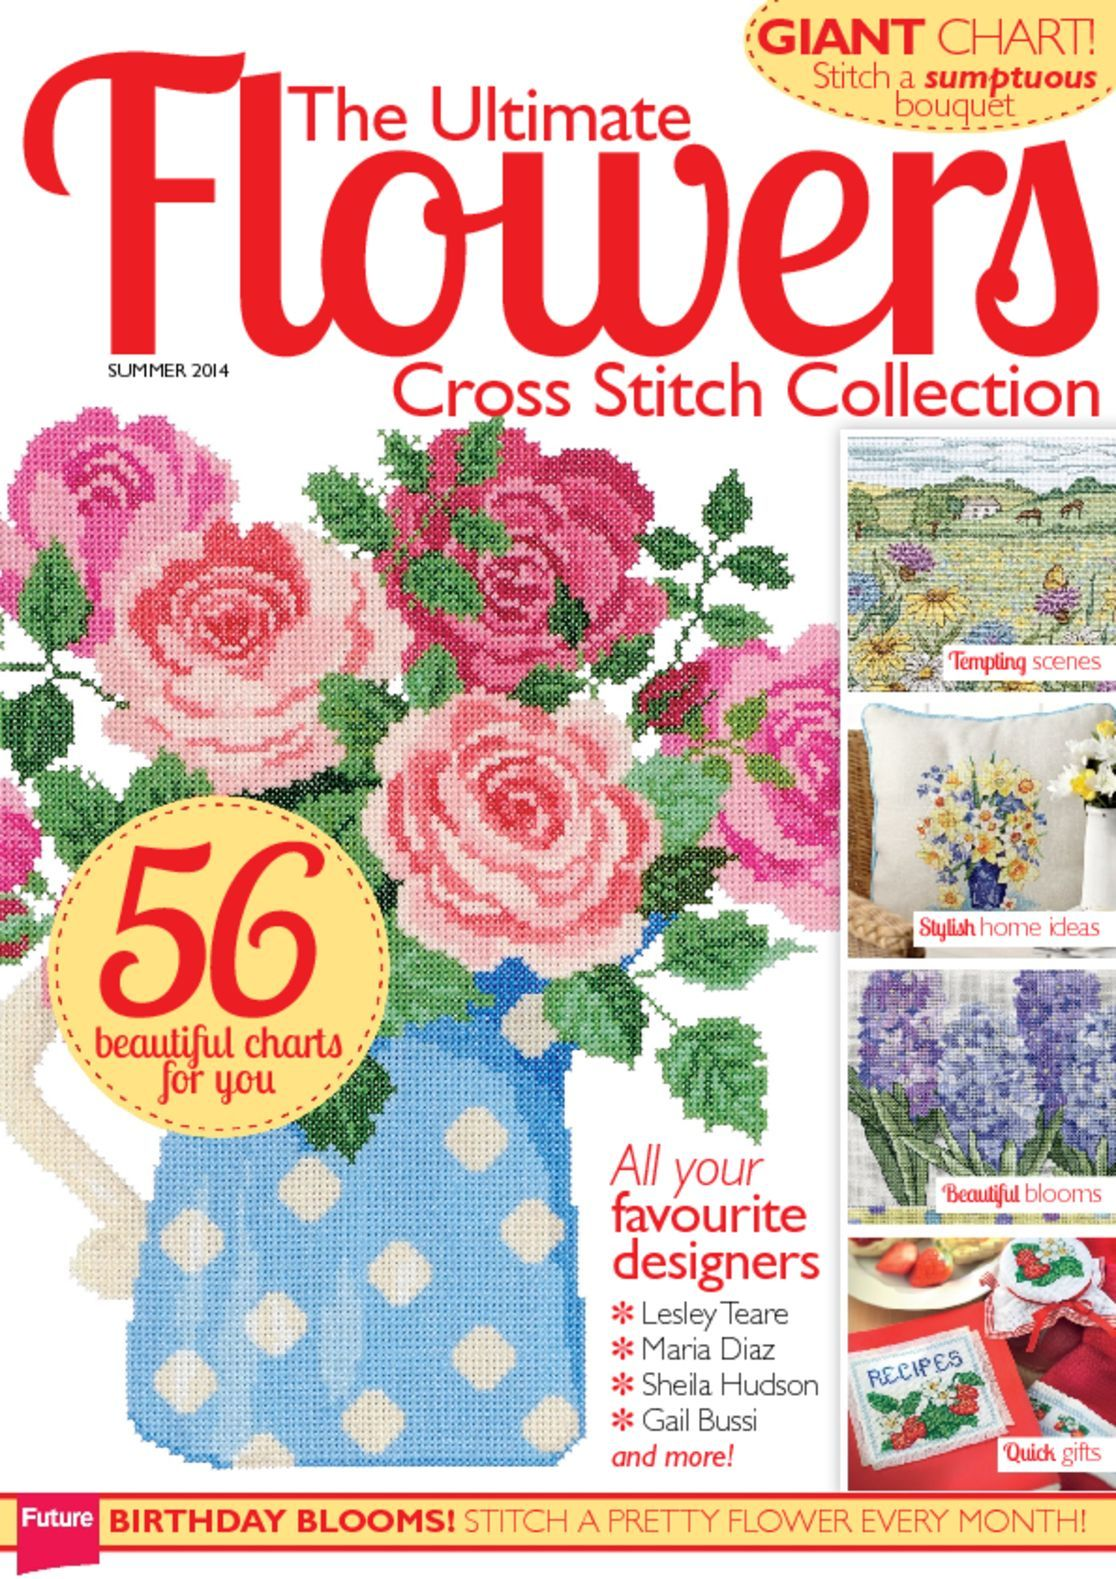 The Ultimate Flowers Cross Stitch Collection Digital